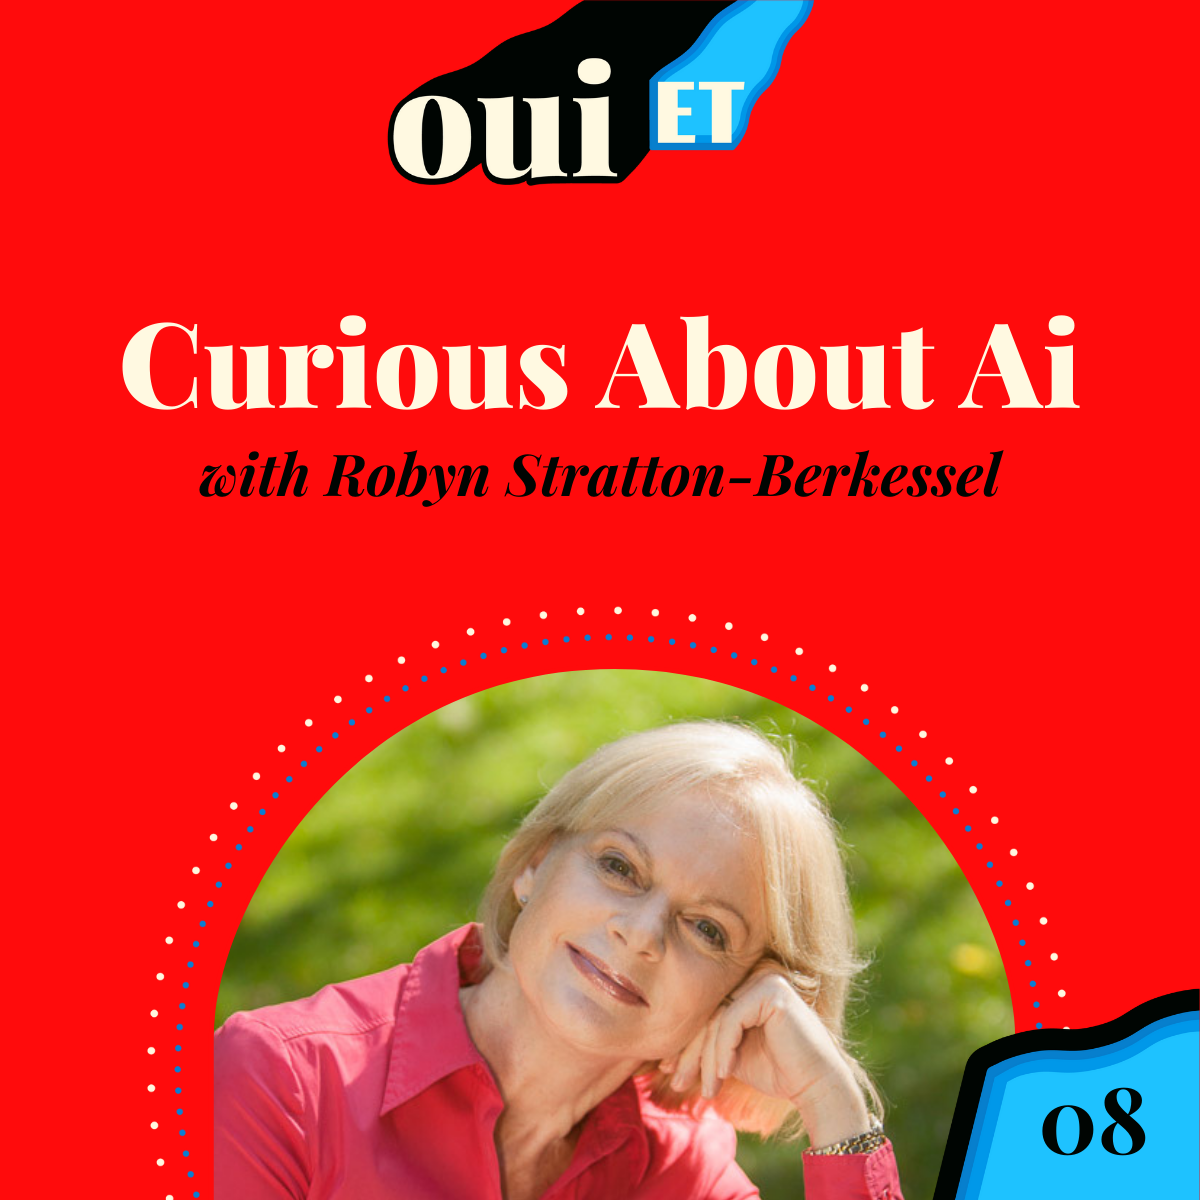 Curious About Appreciative Inquiry? with Robyn Stratton-Berkessel